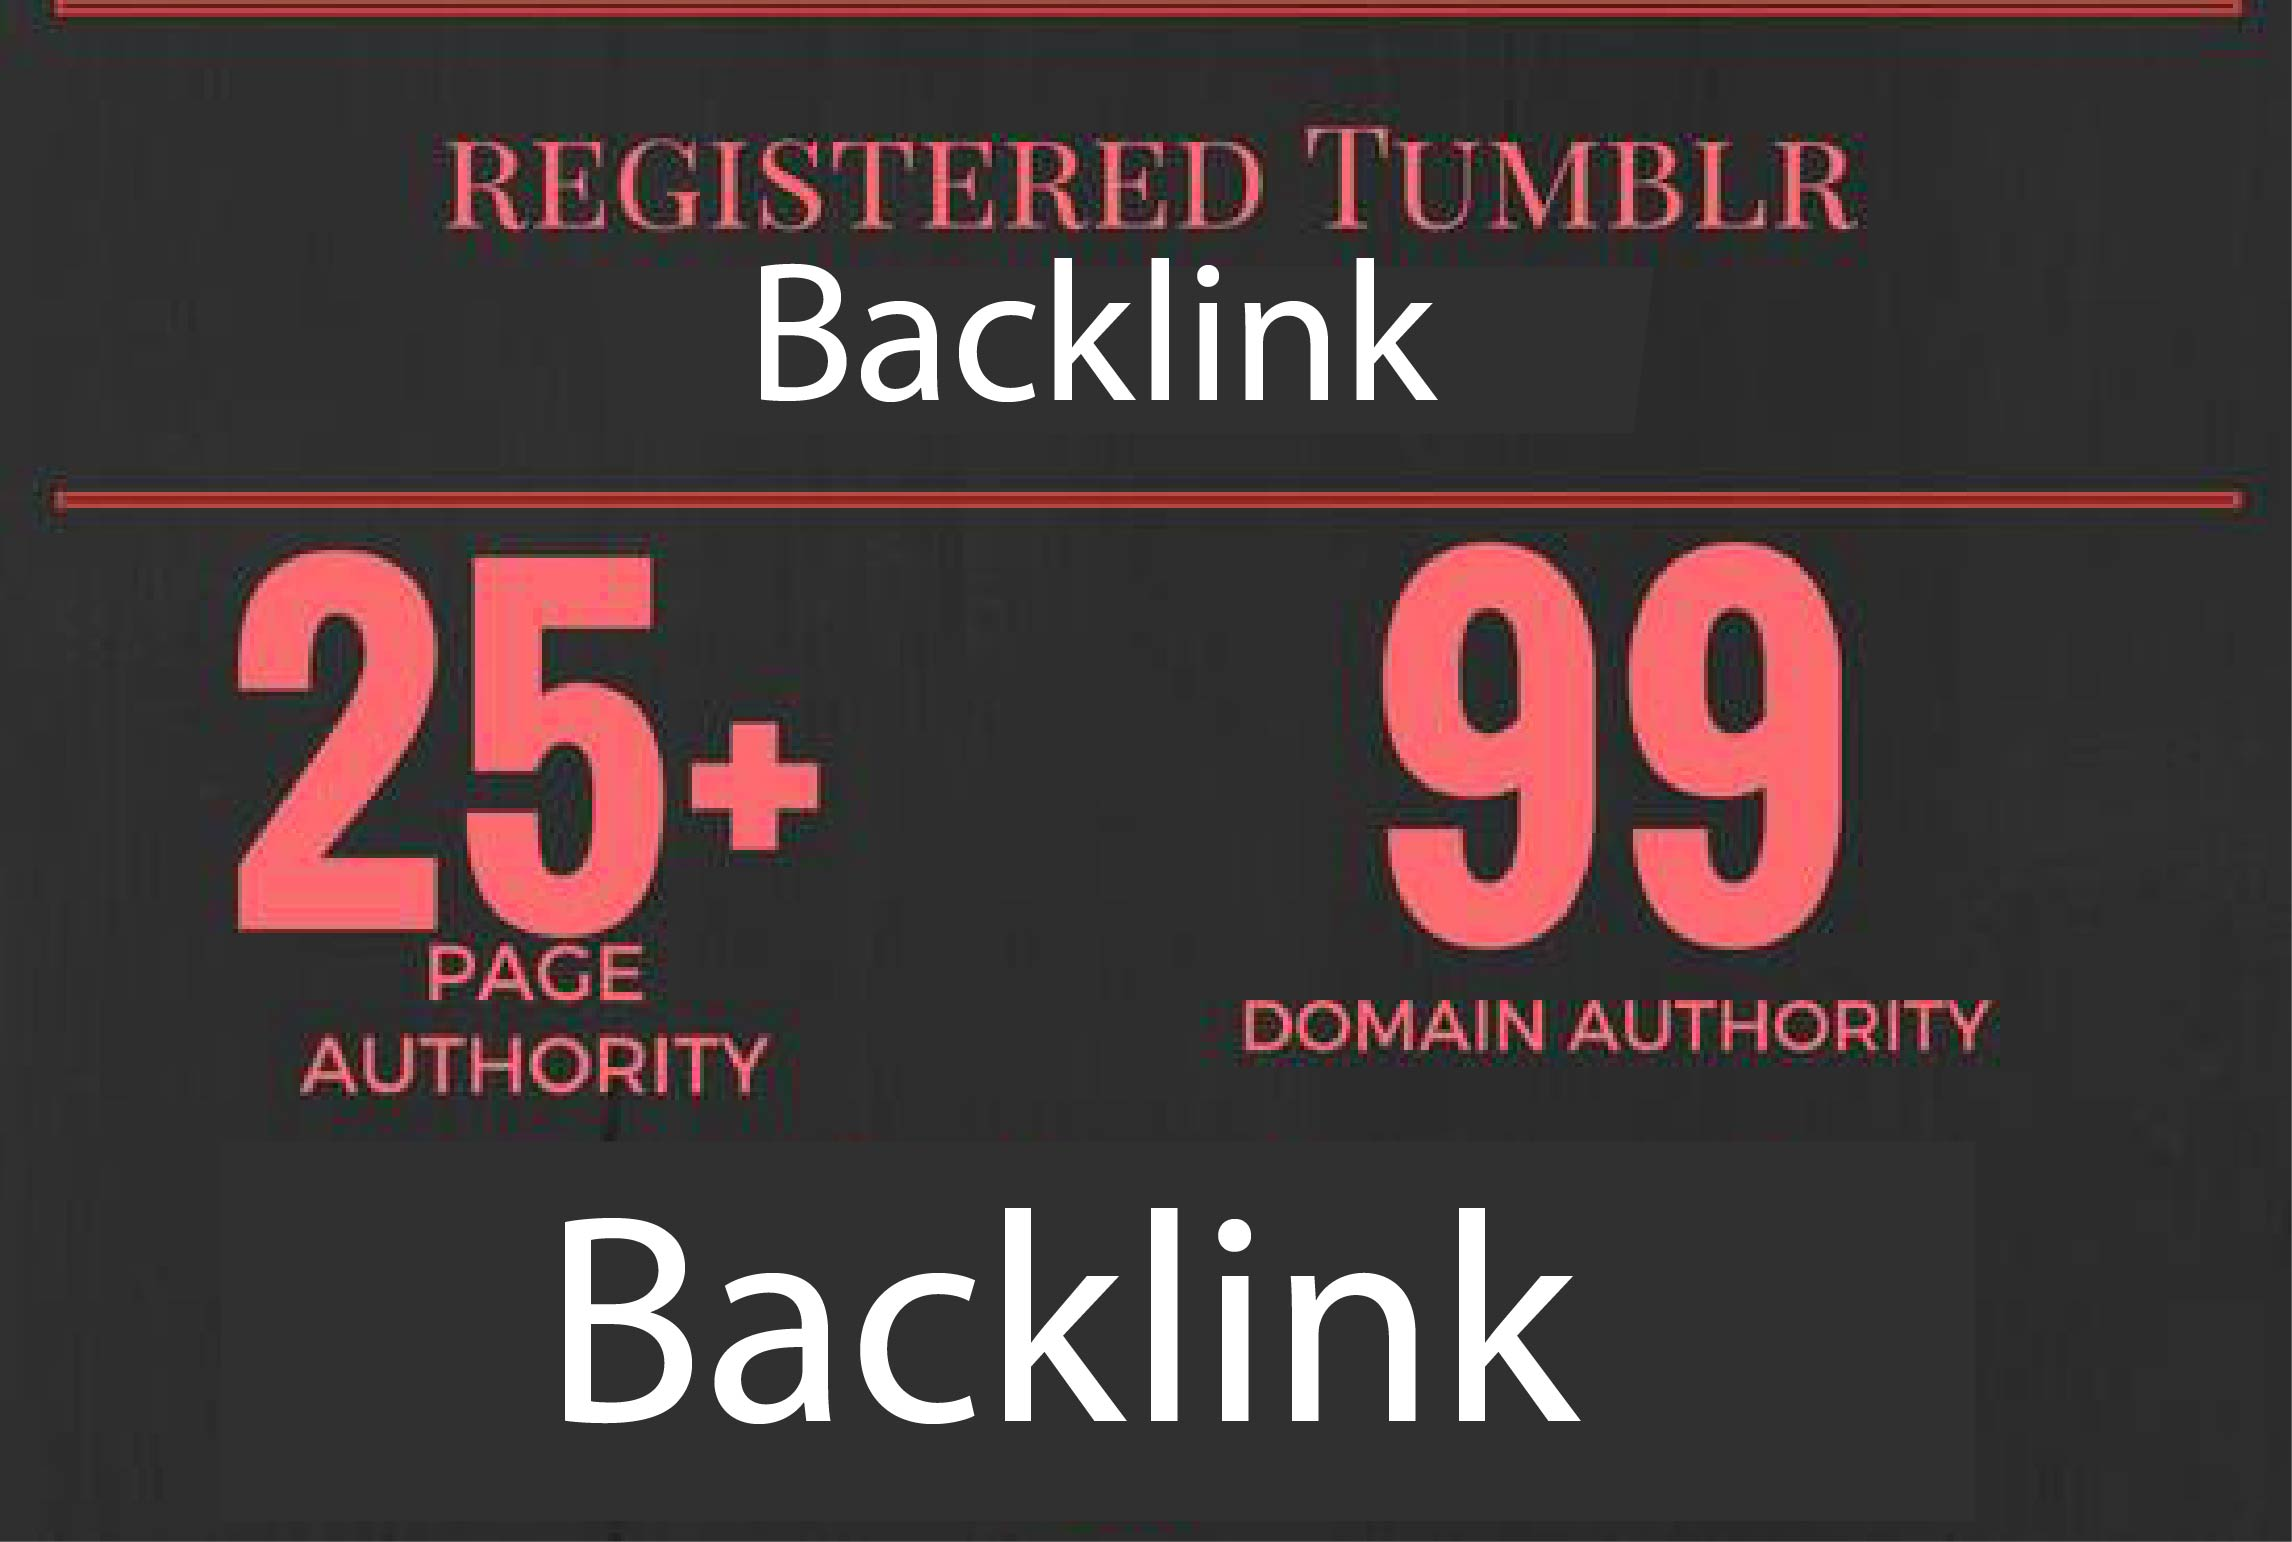 Build 30 page authority 27+ Super Authority manual web 2, 0 Backlink Tumbler Blog Boost rank